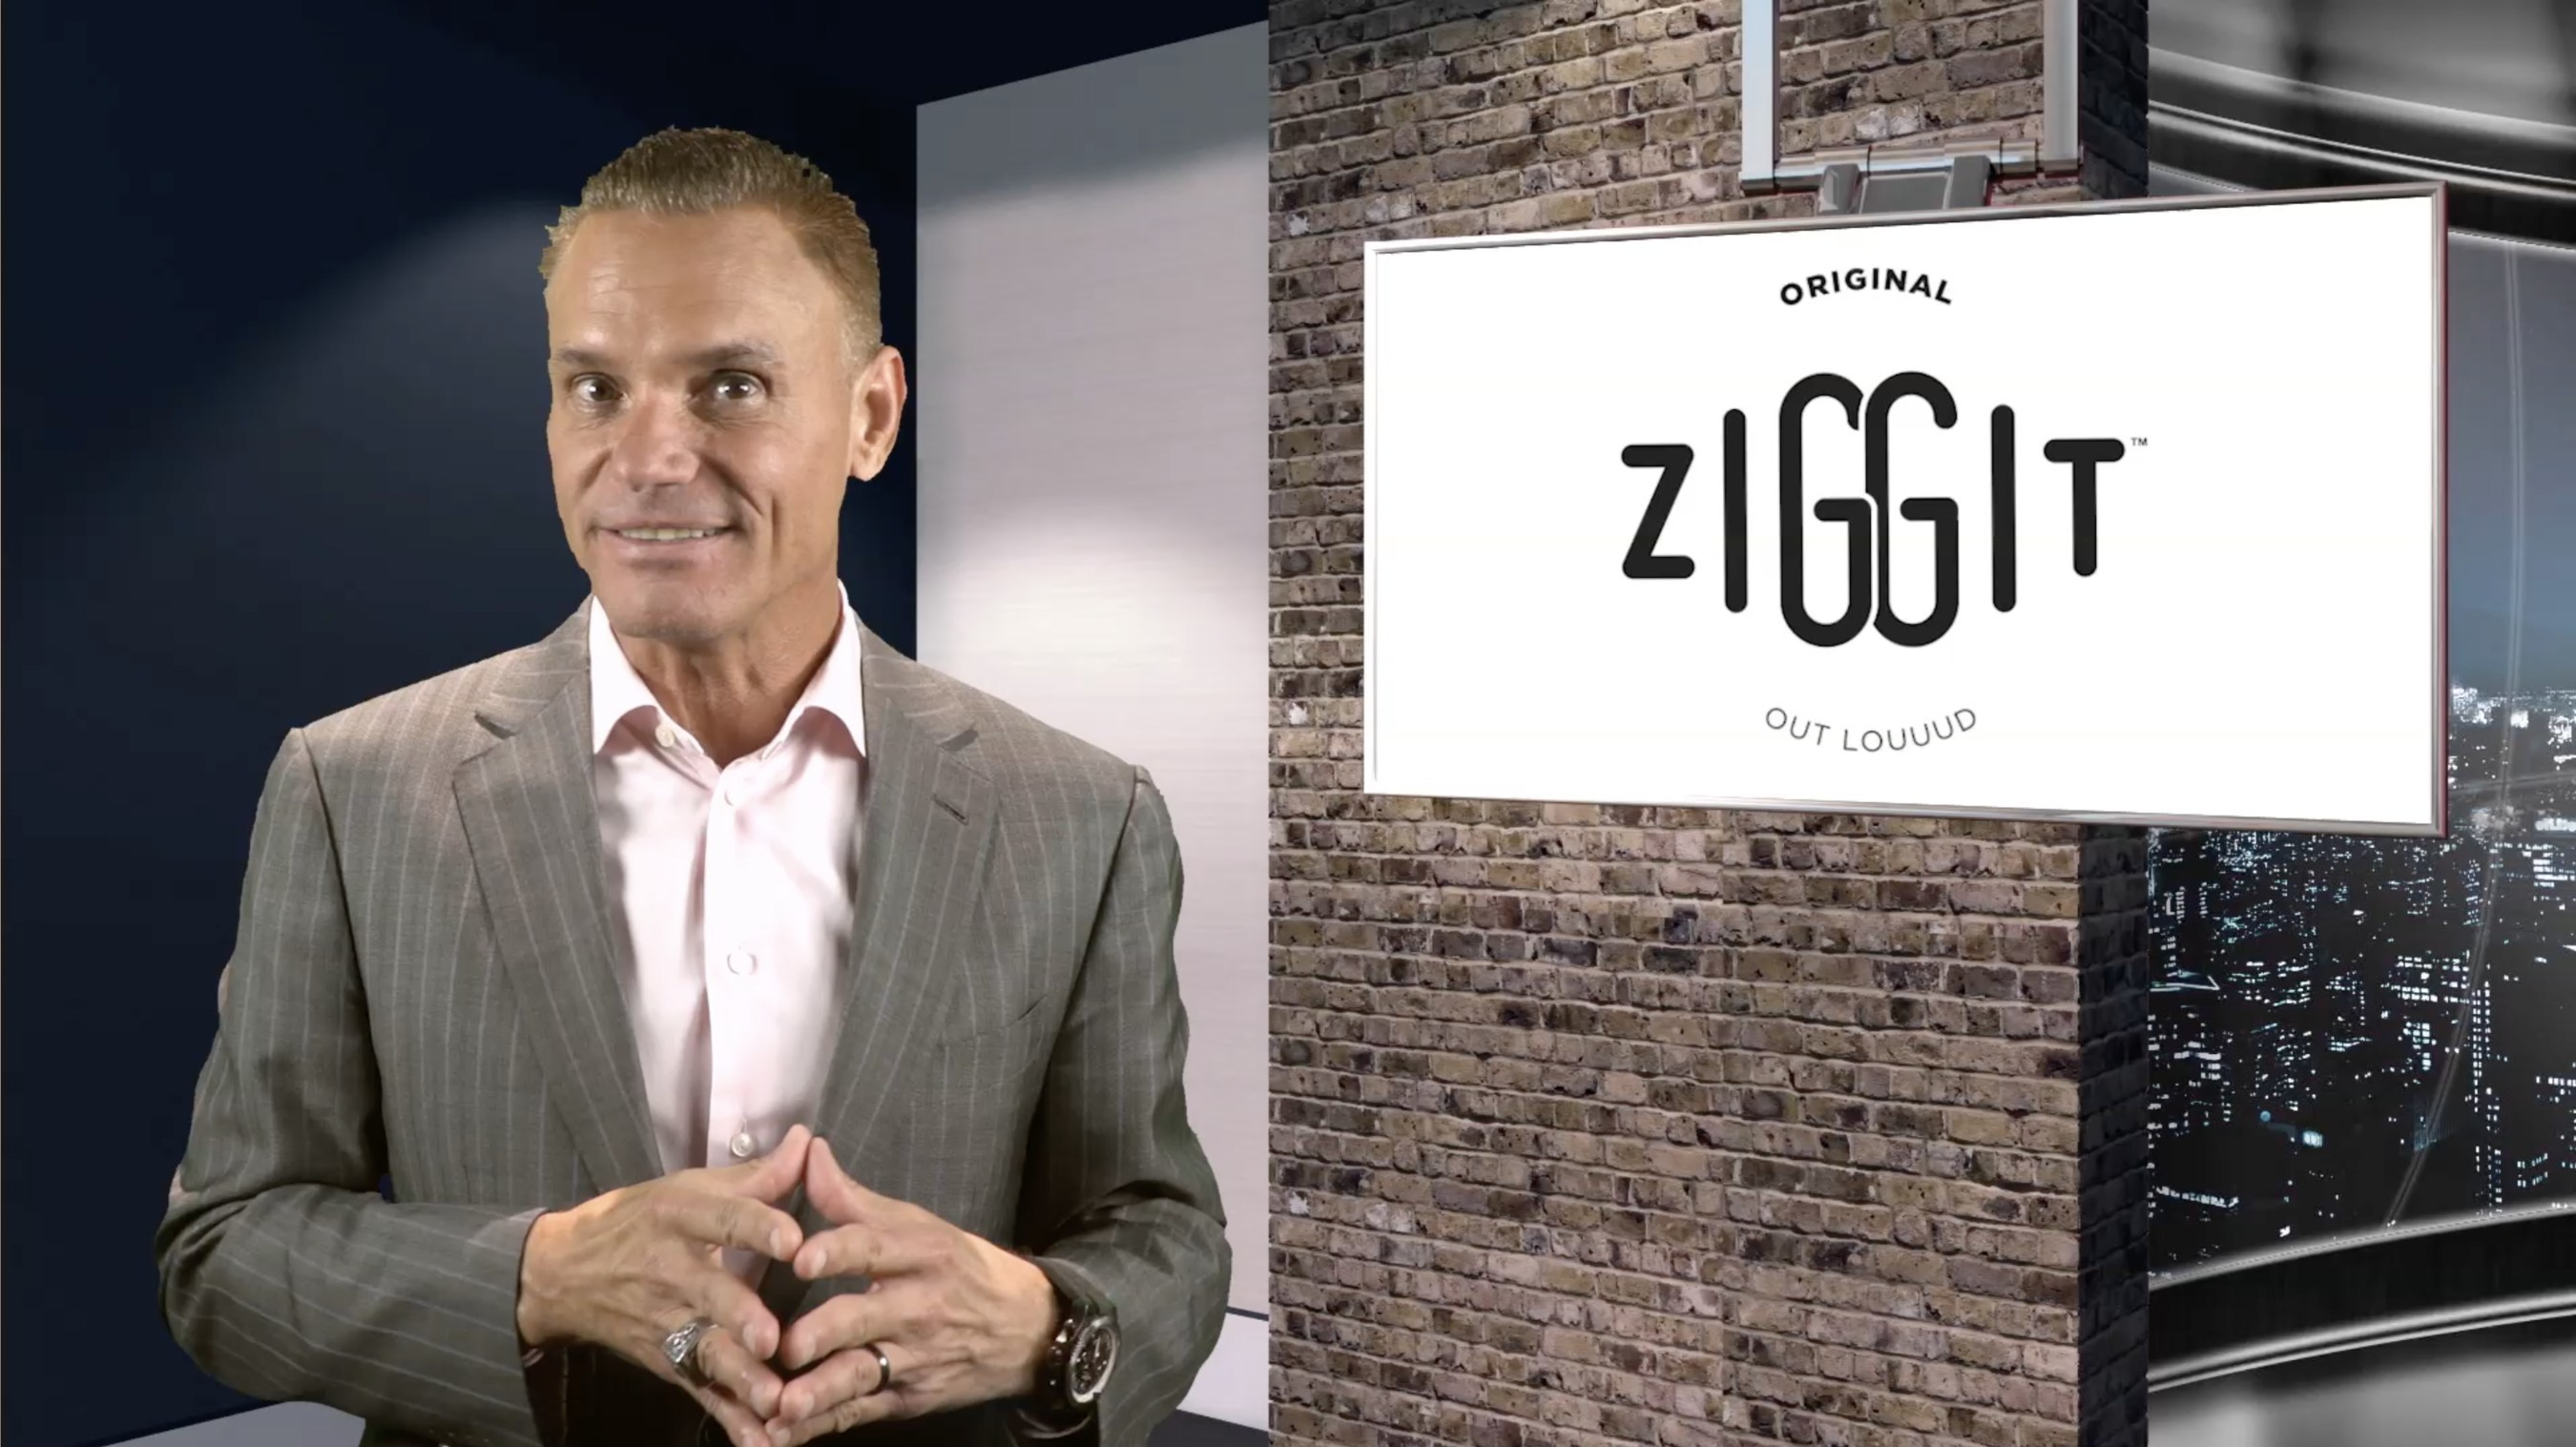 Kevin Harrington and Ziggit launch a new DRTV campaign together